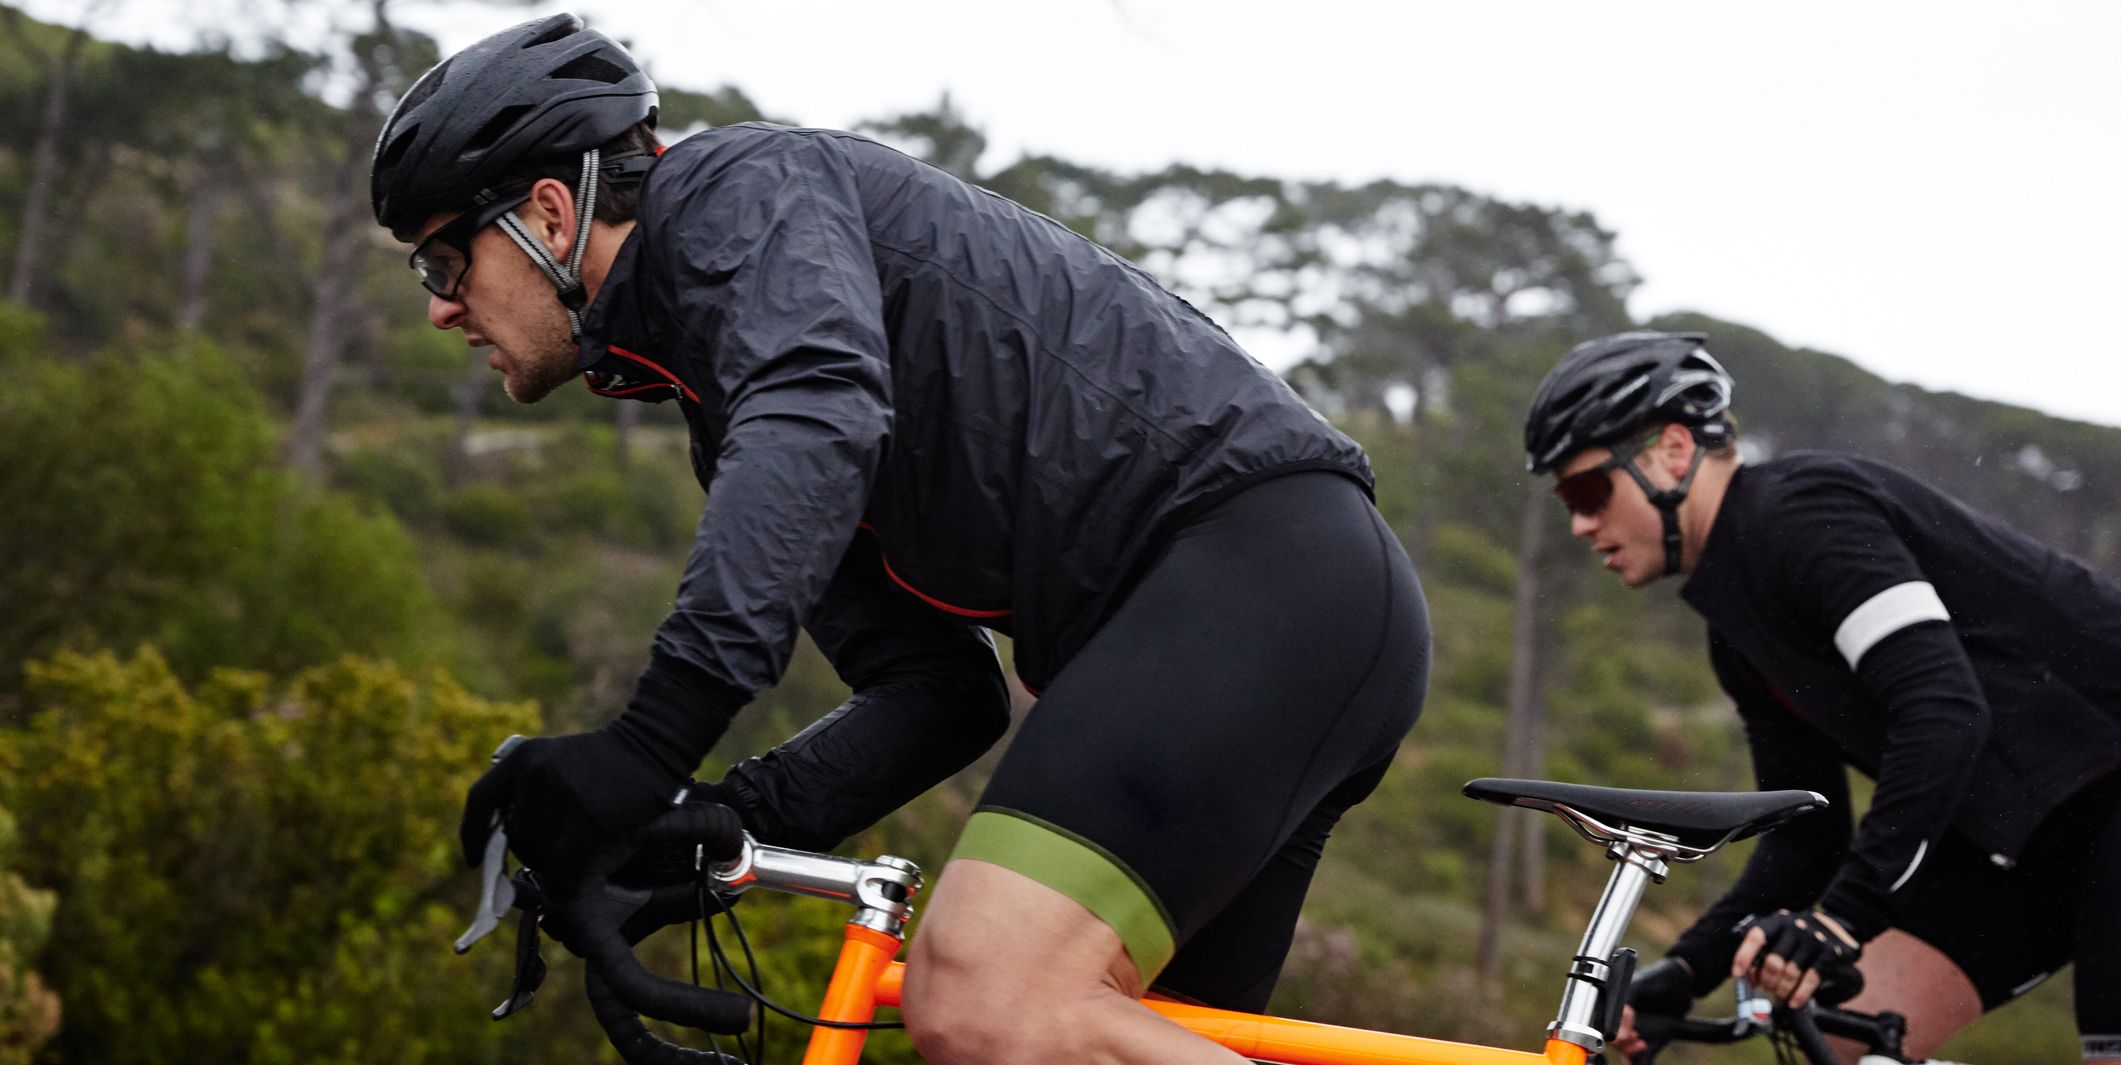 Focused, determined male cyclist cycling uphill